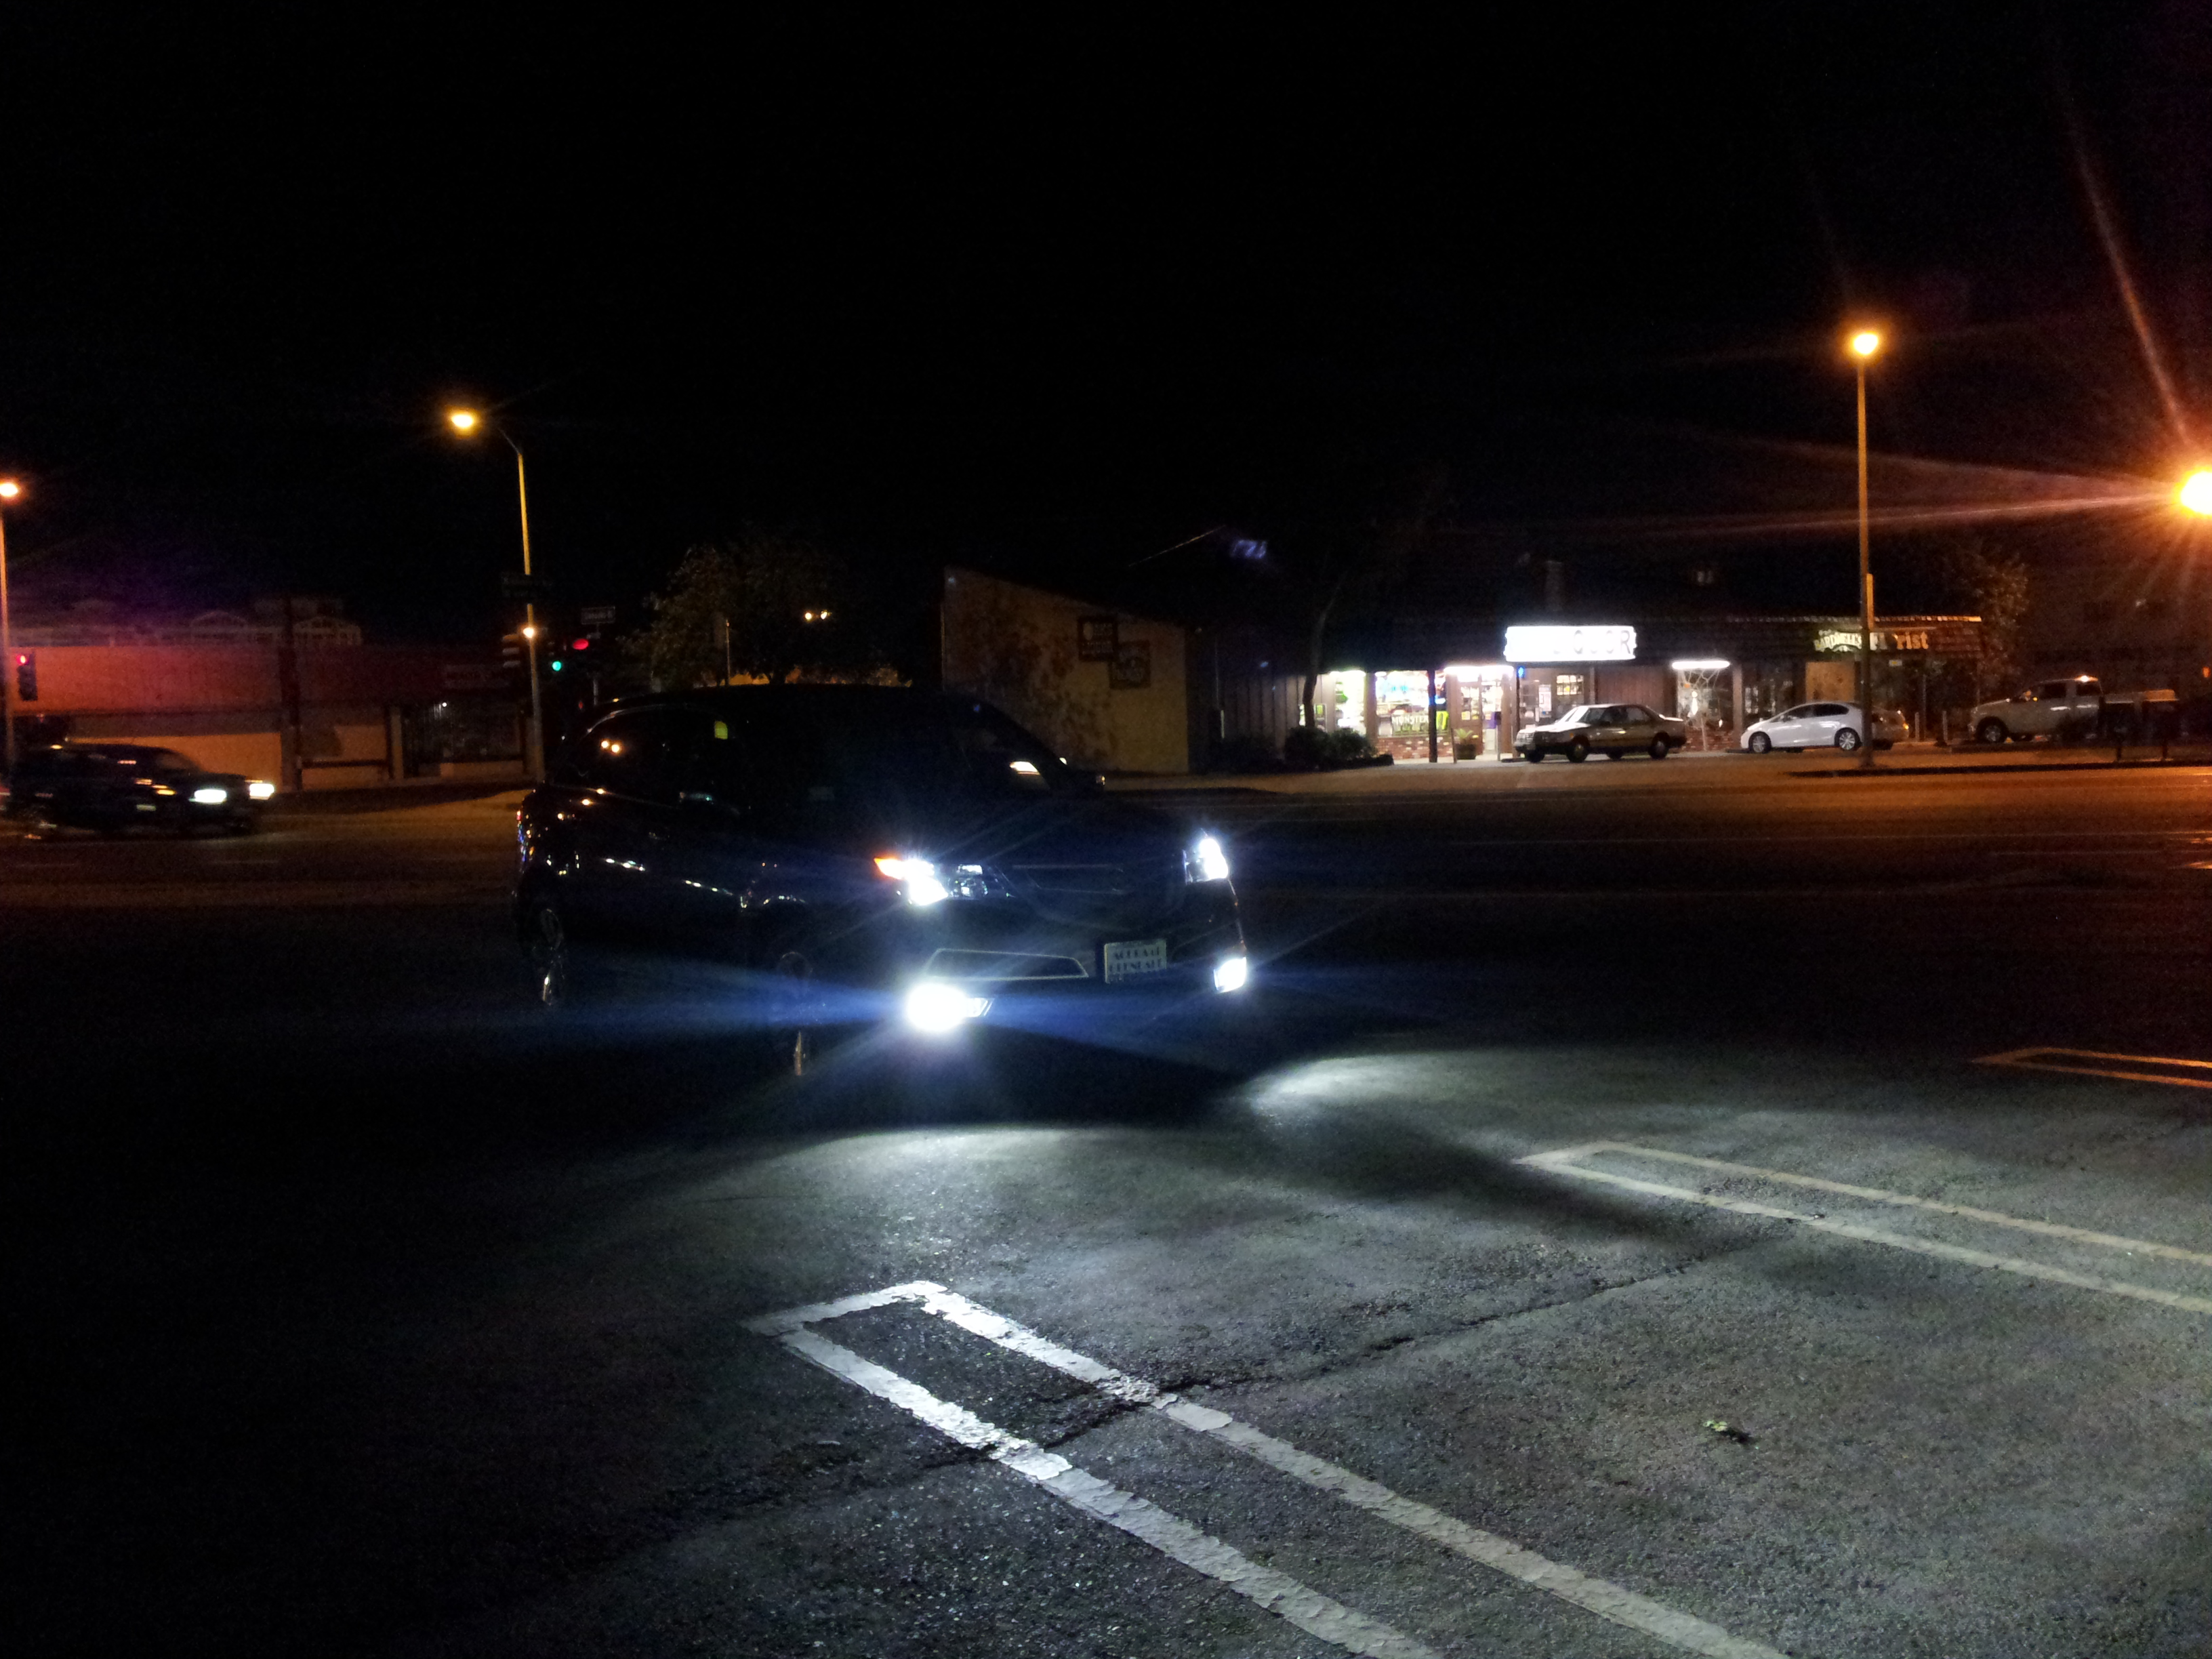 HID Fog/LED DRL Installed - PICS-20121025_214012.jpg